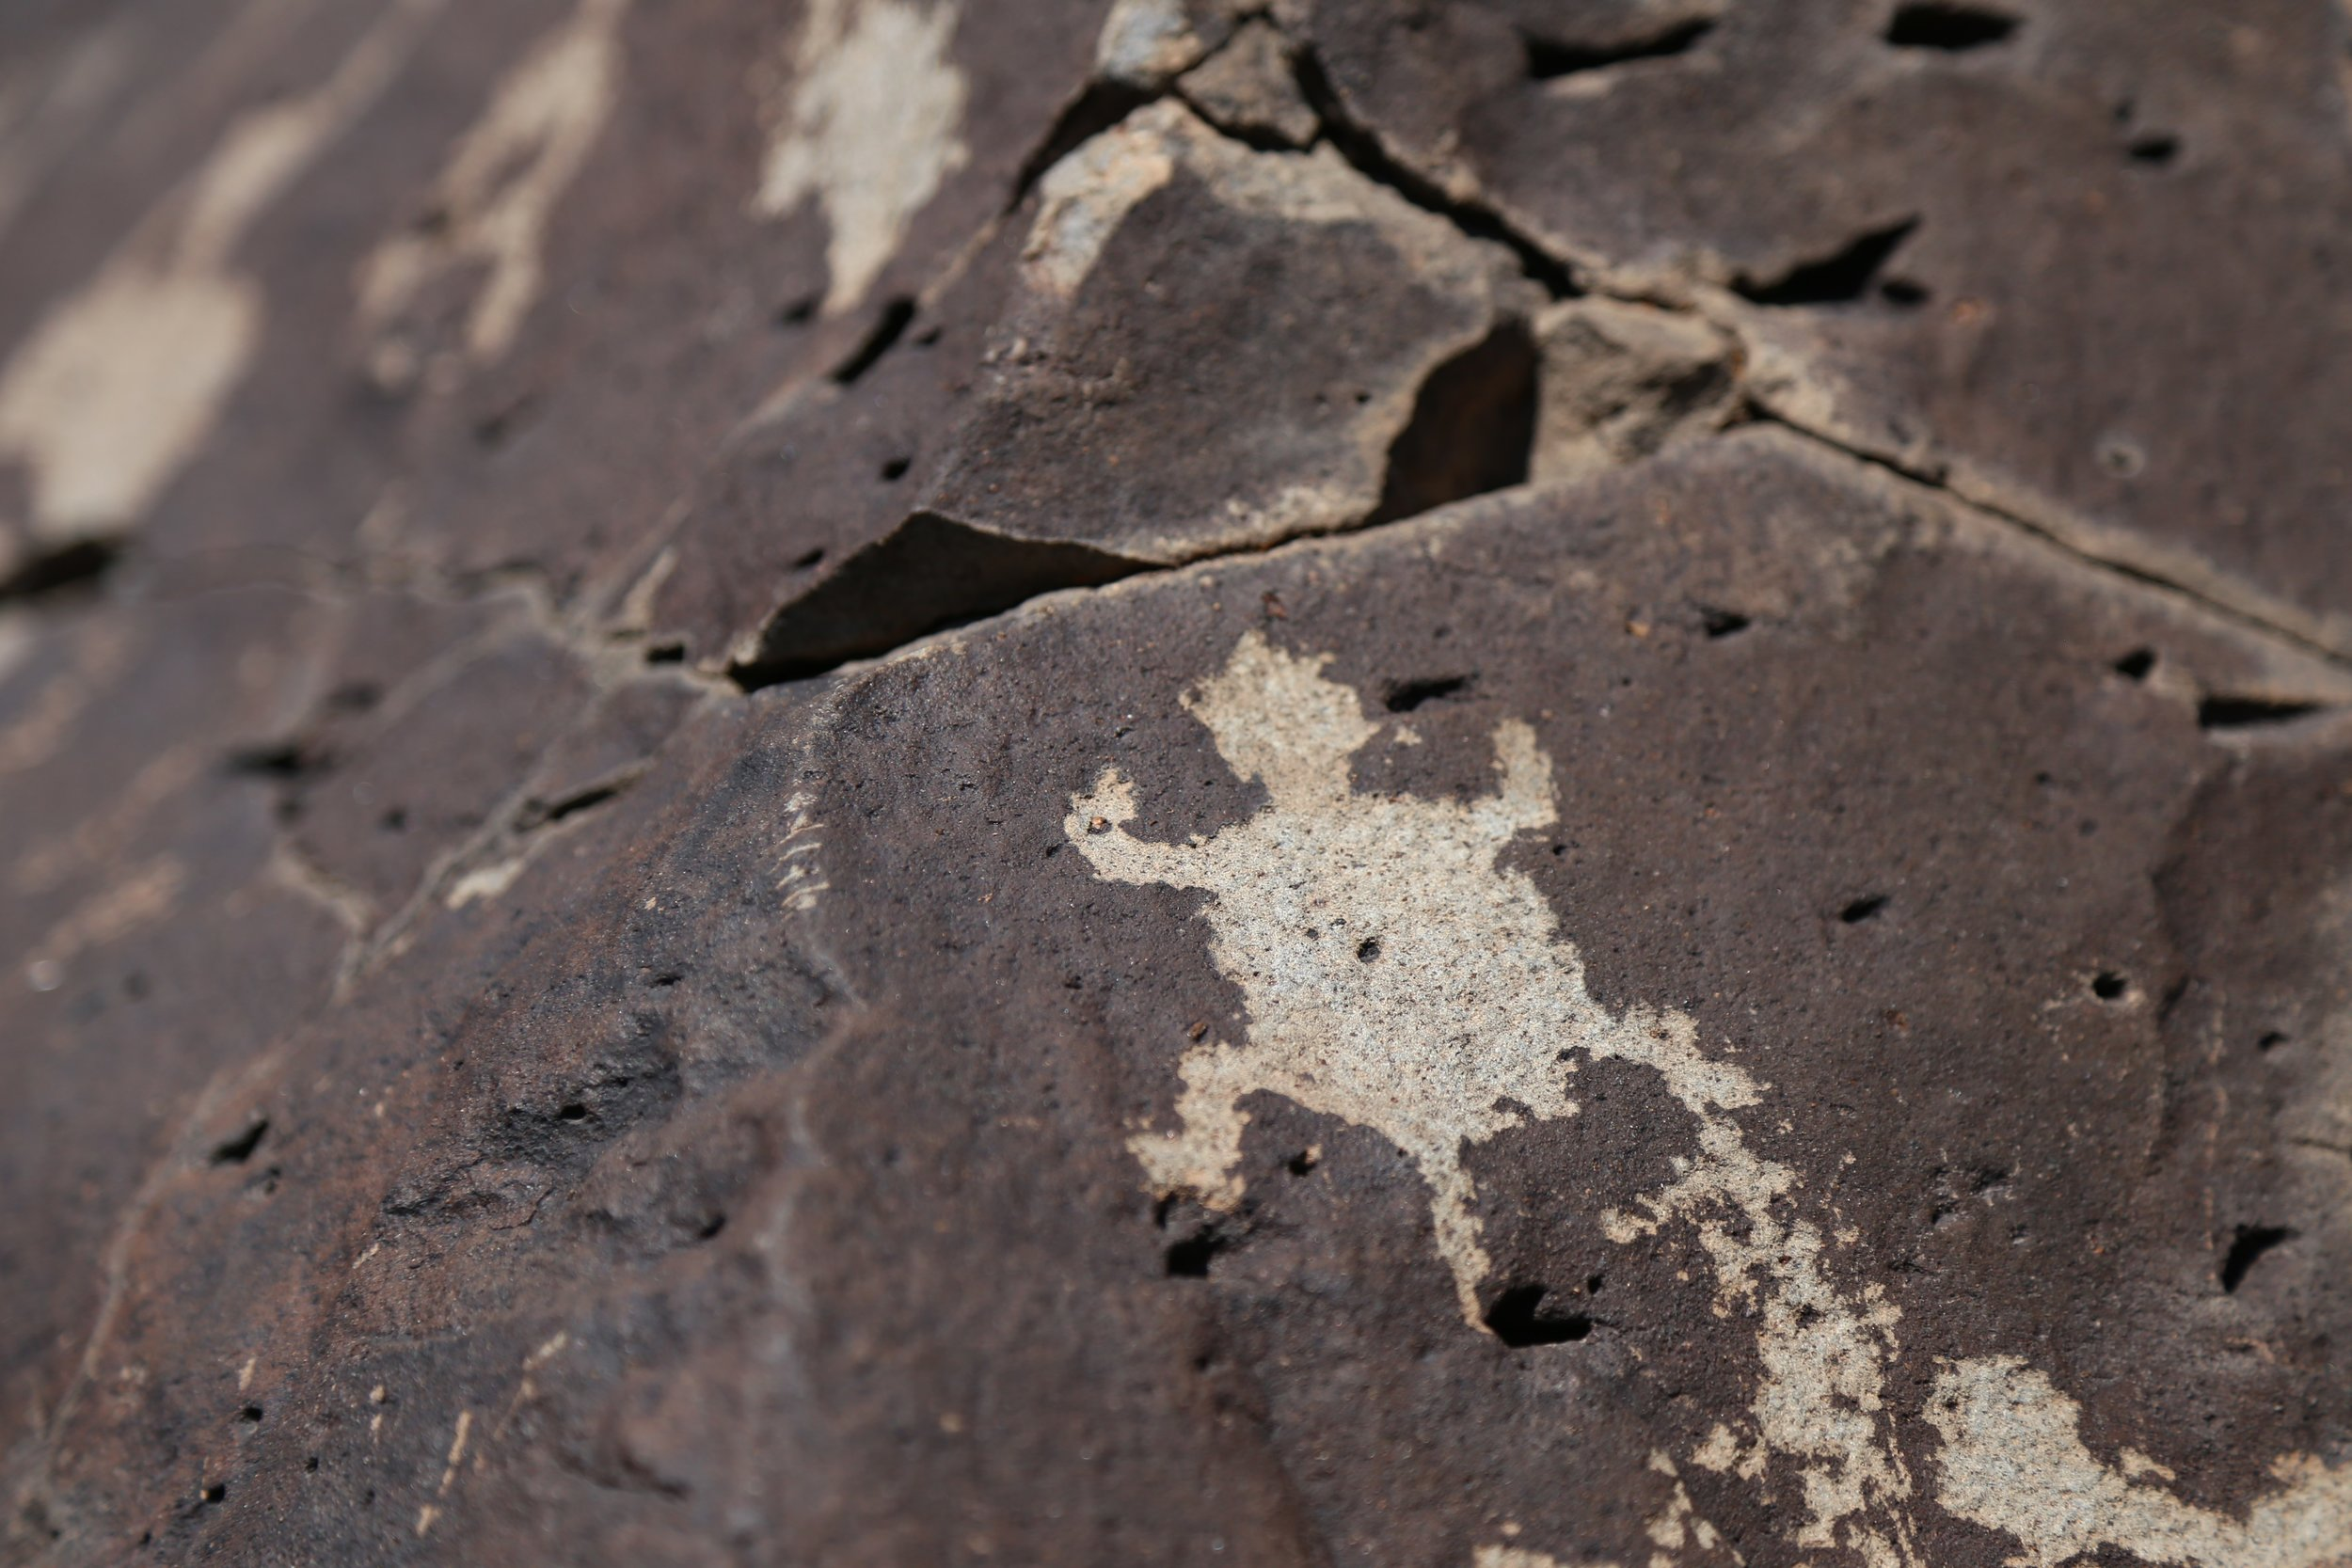 A petroglyph just outside of Santa Fe